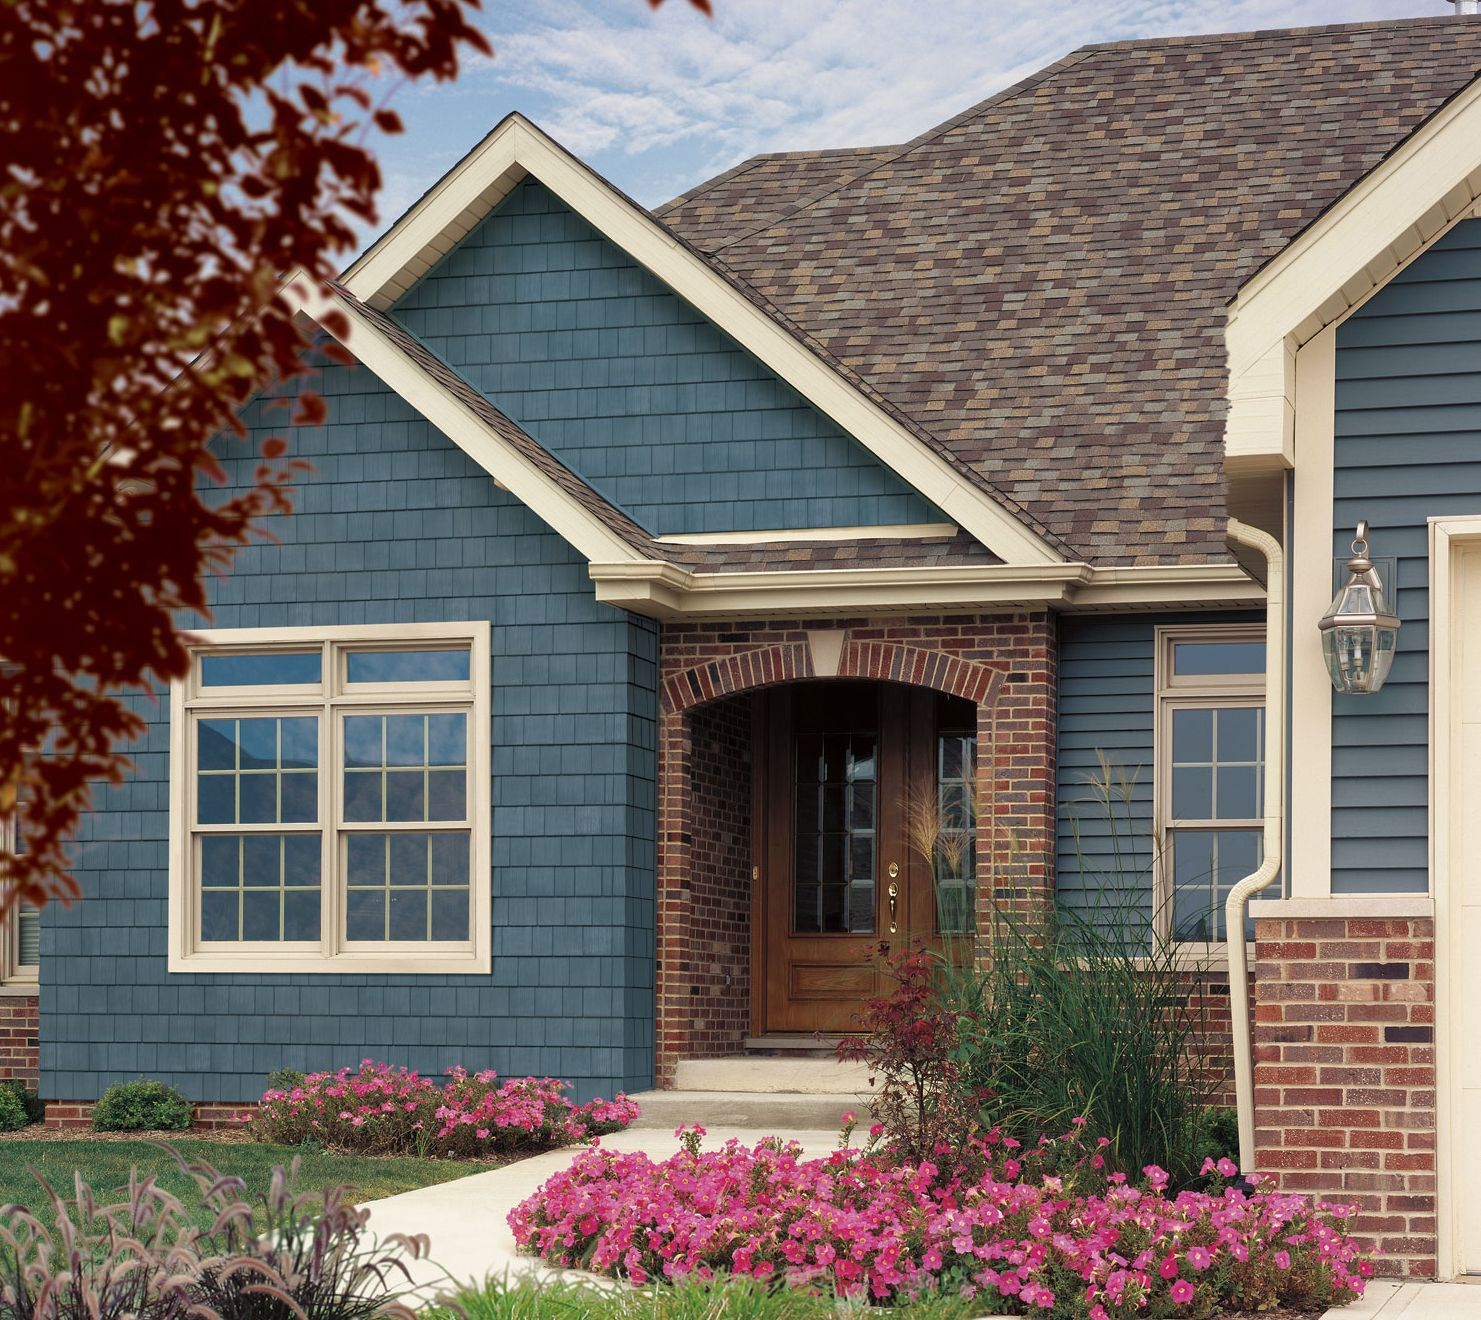 Certainteed Vinyl Siding Colors Overview Features Dream Home Design Decor Pinterest